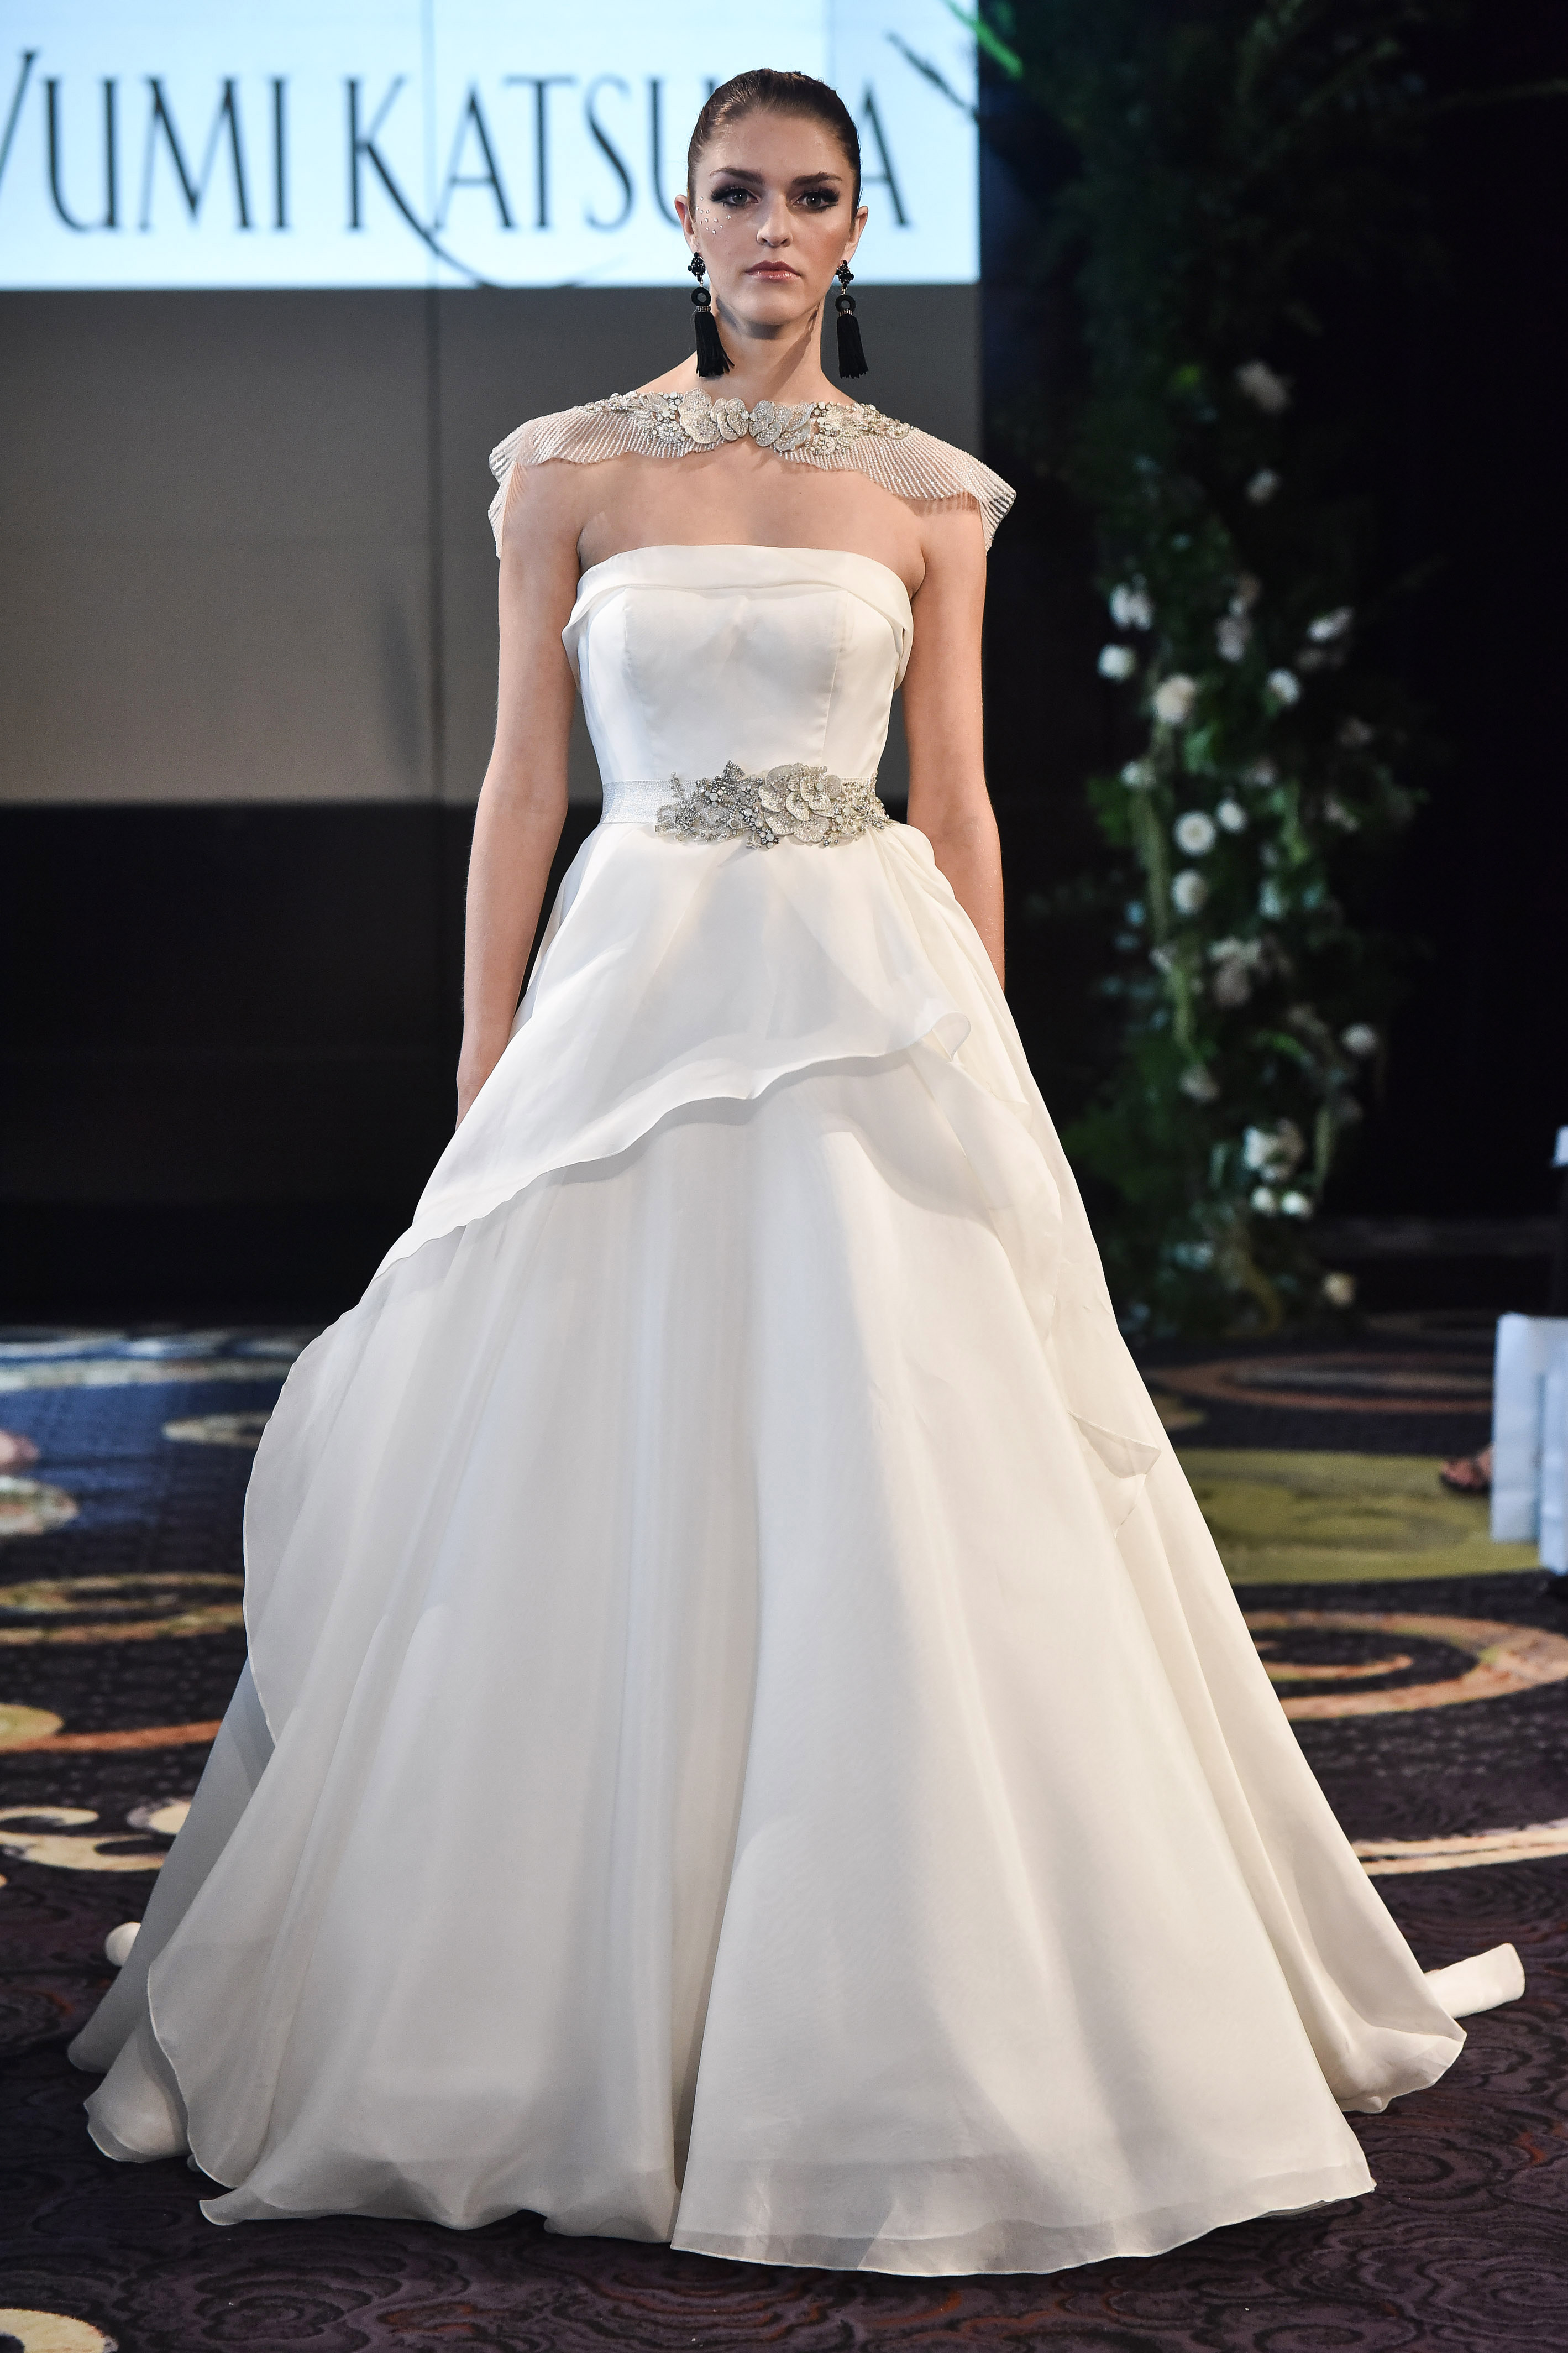 yumi katsura fall 2018 a-line cape wedding dress